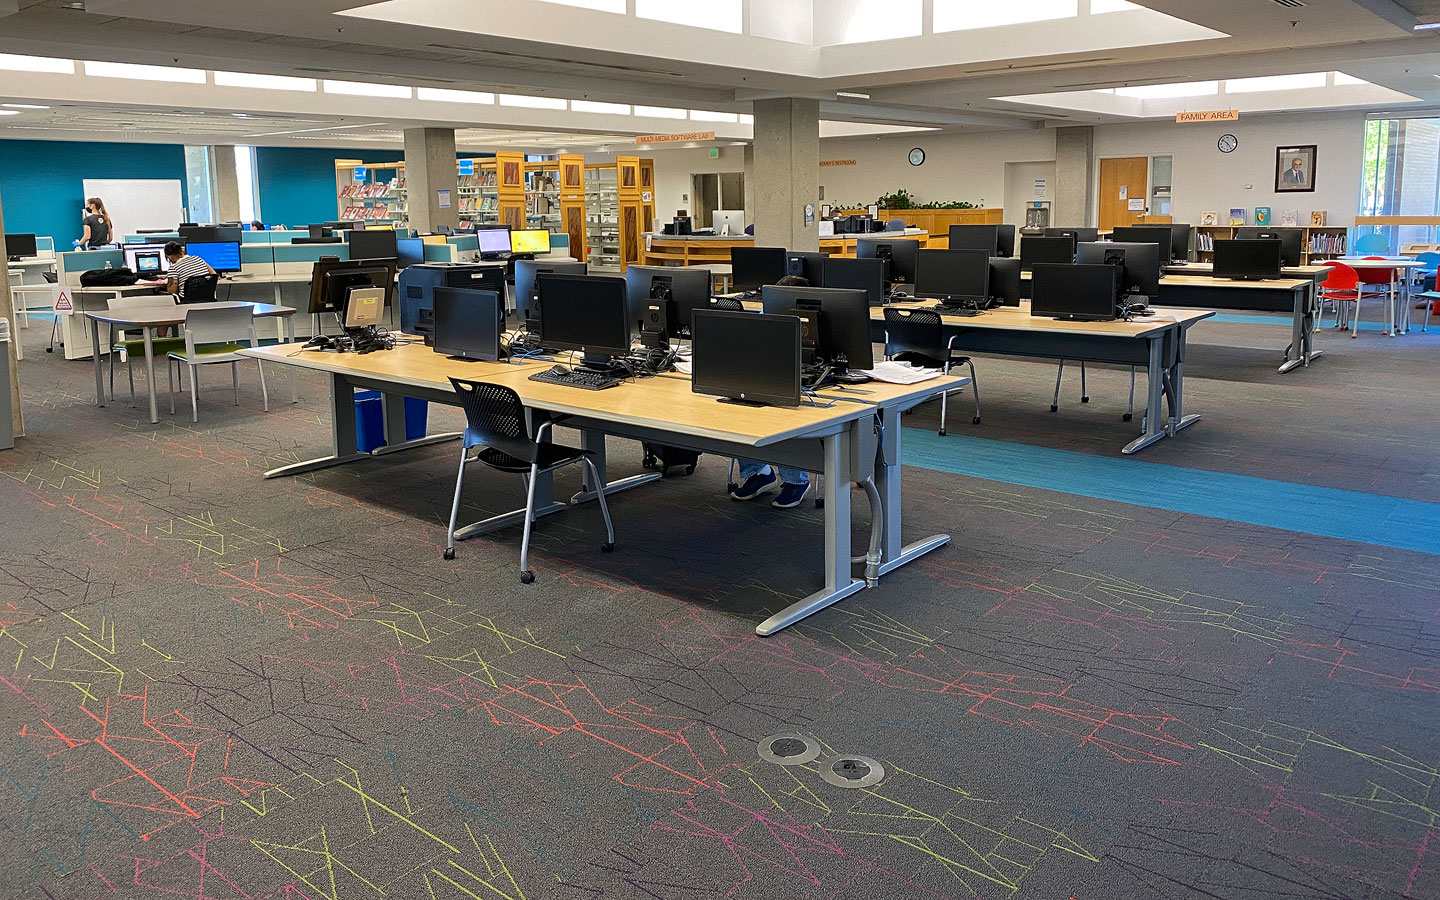 Computer stations with reduced seating in Markosian Library